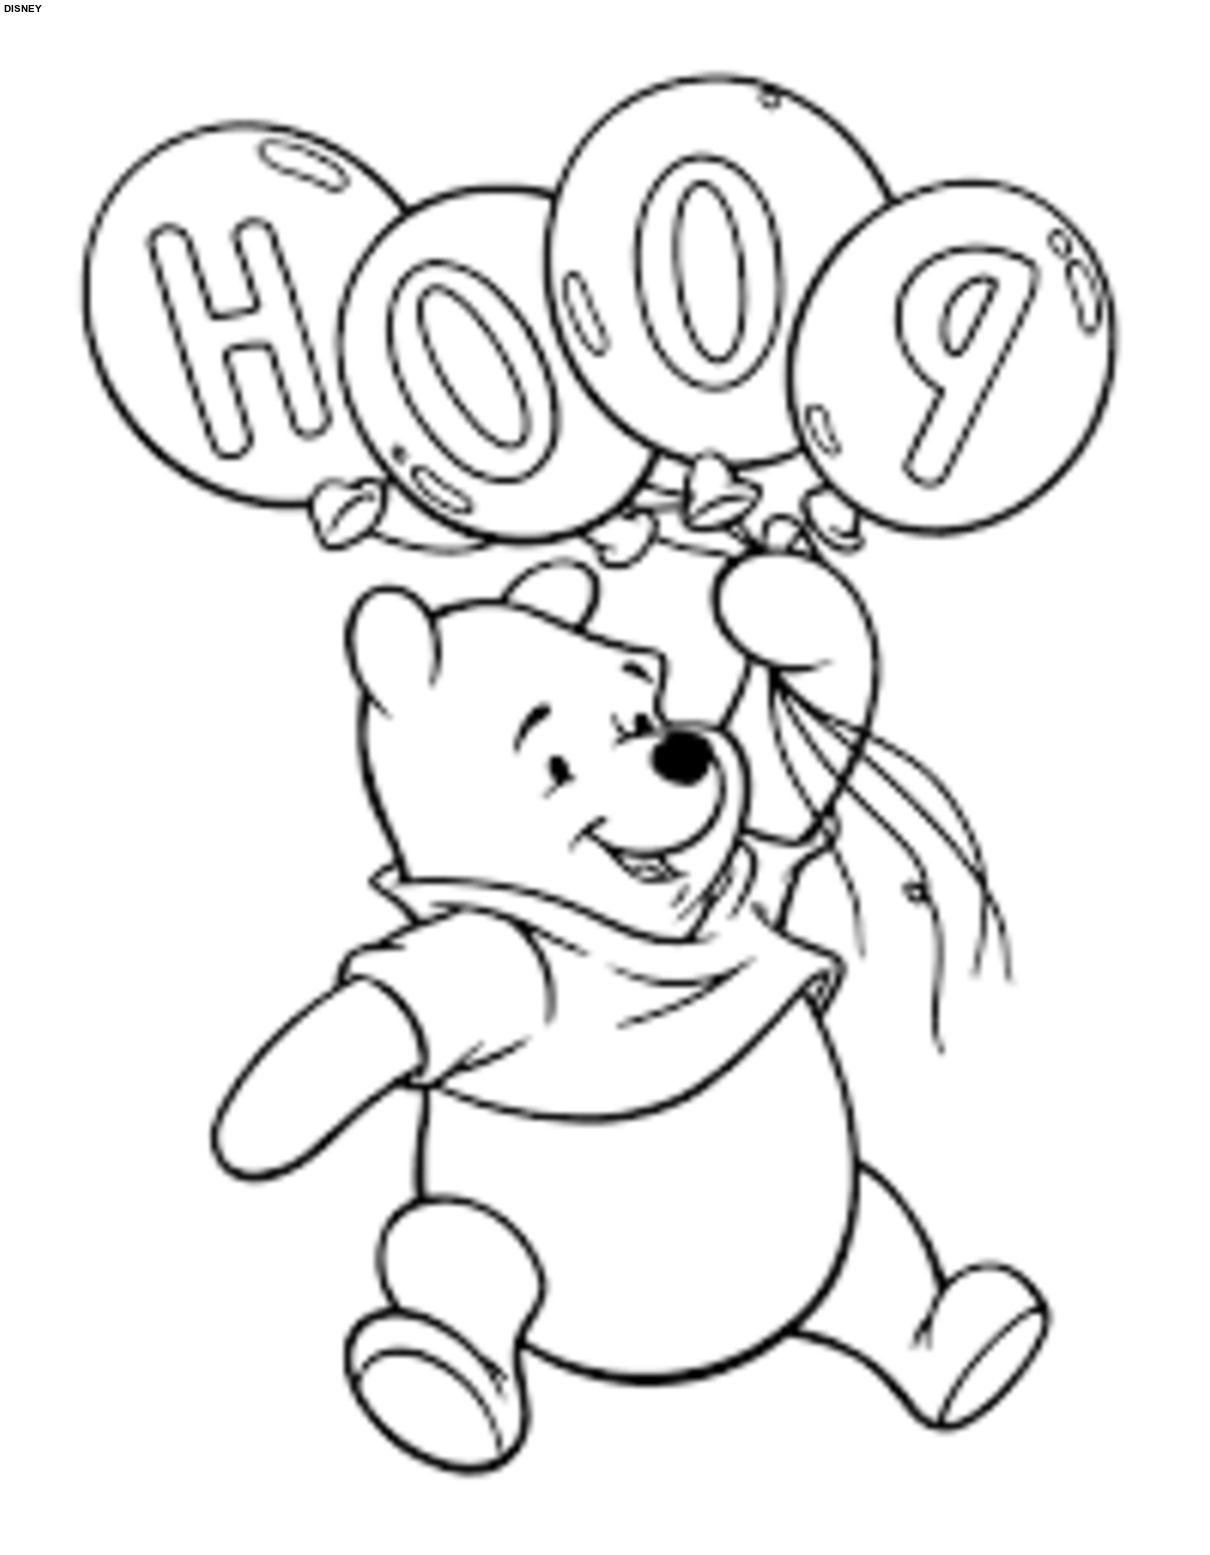 Volleyball Coloring Sheets Disney Characters Coloring Pages